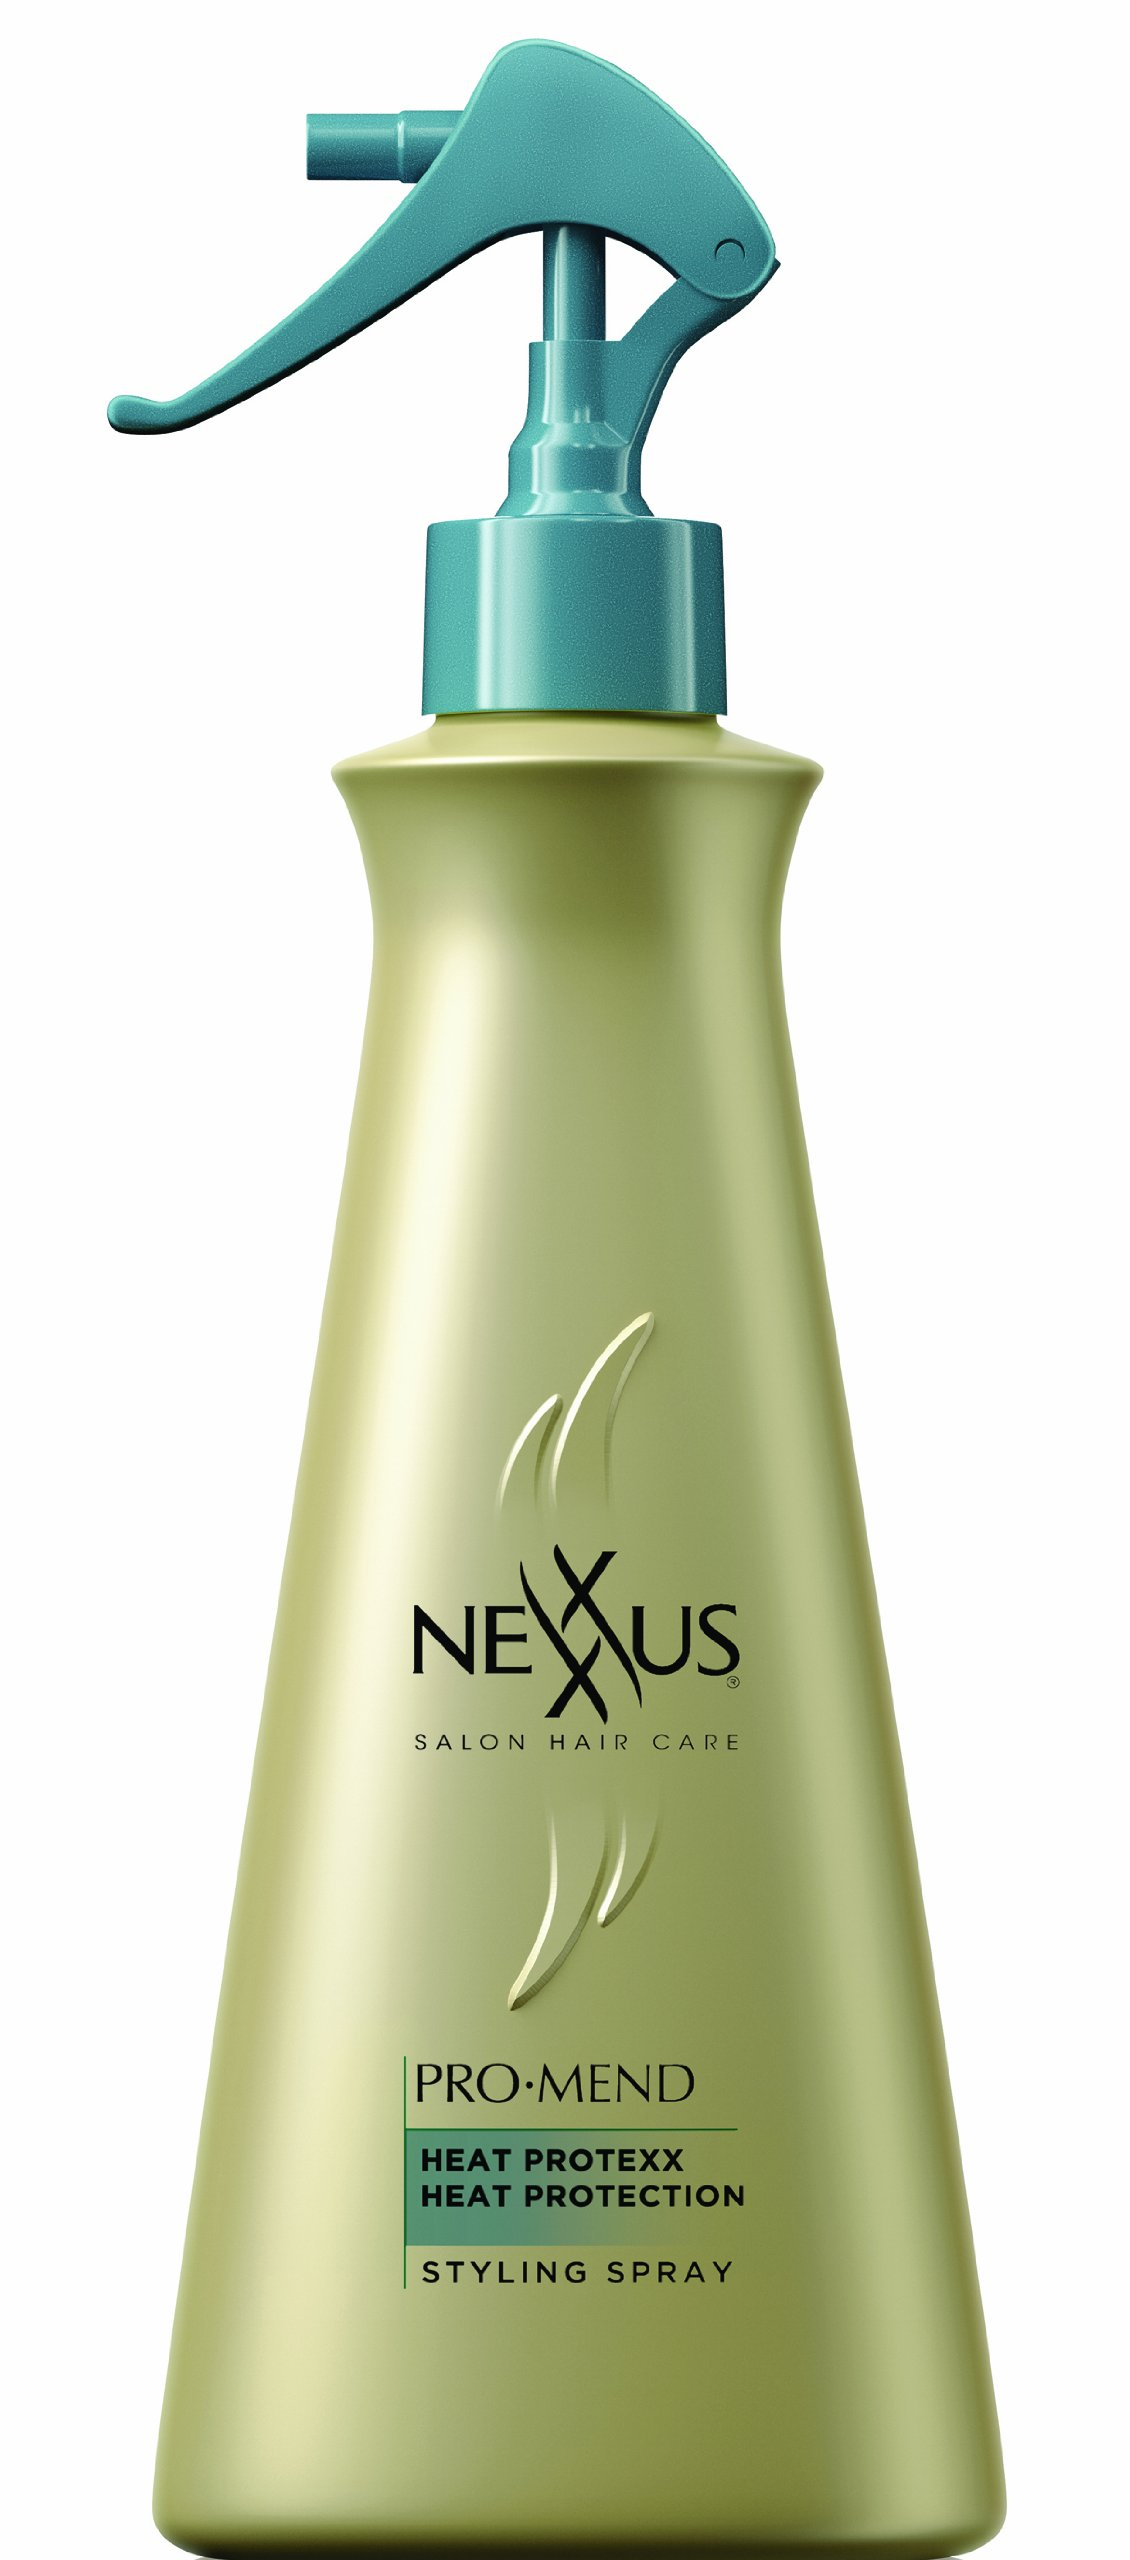 Nexxus Heat Pro-mend Heat Protection Styling Spray, 8.5-Ounce Bottles (Pack of 2)